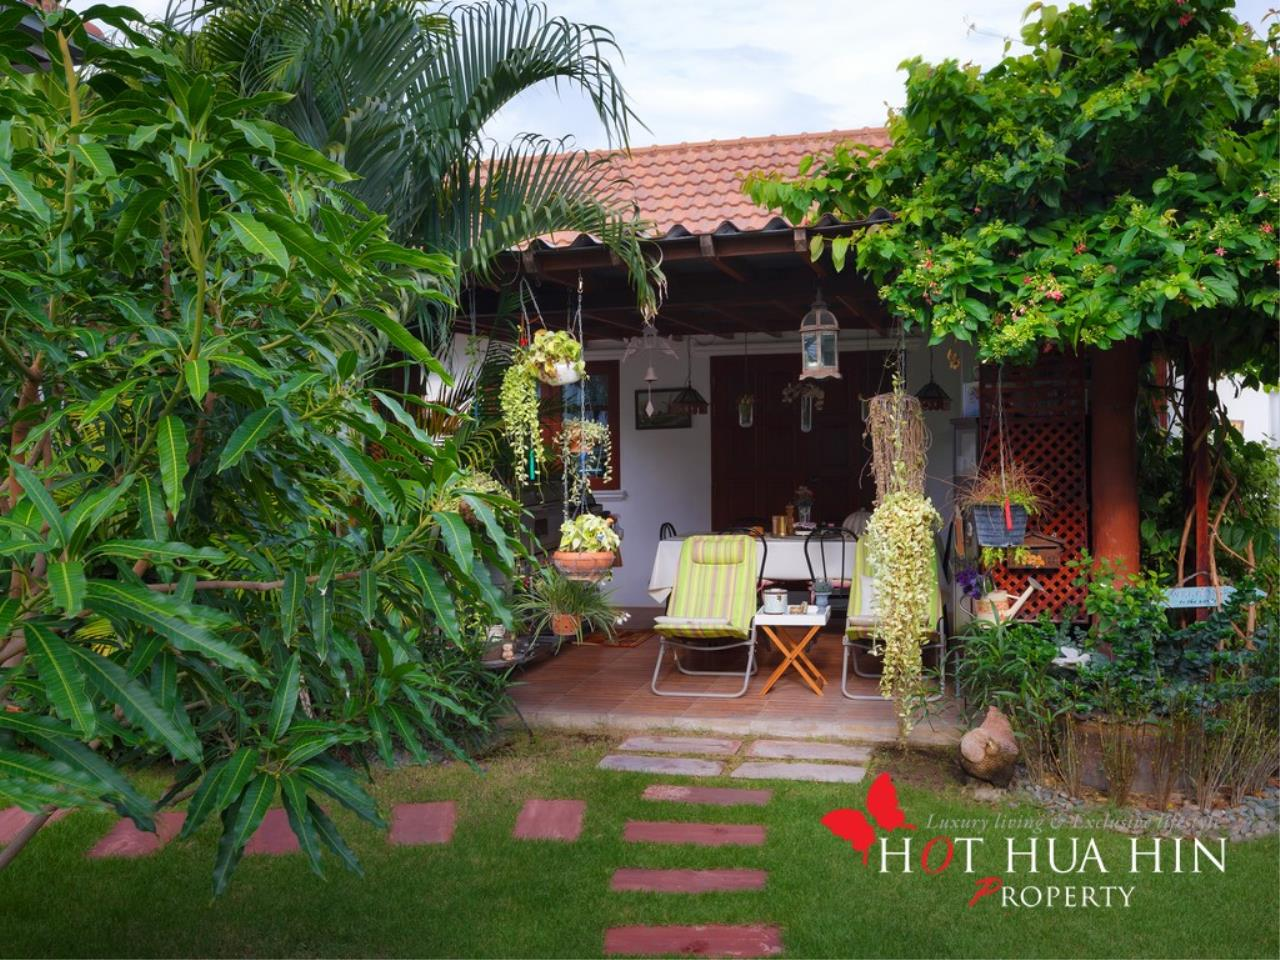 Hot Hua Hin Co. Ltd. Agency's Well Built Home With Stunning Gardens And Two Full Kitchens 34